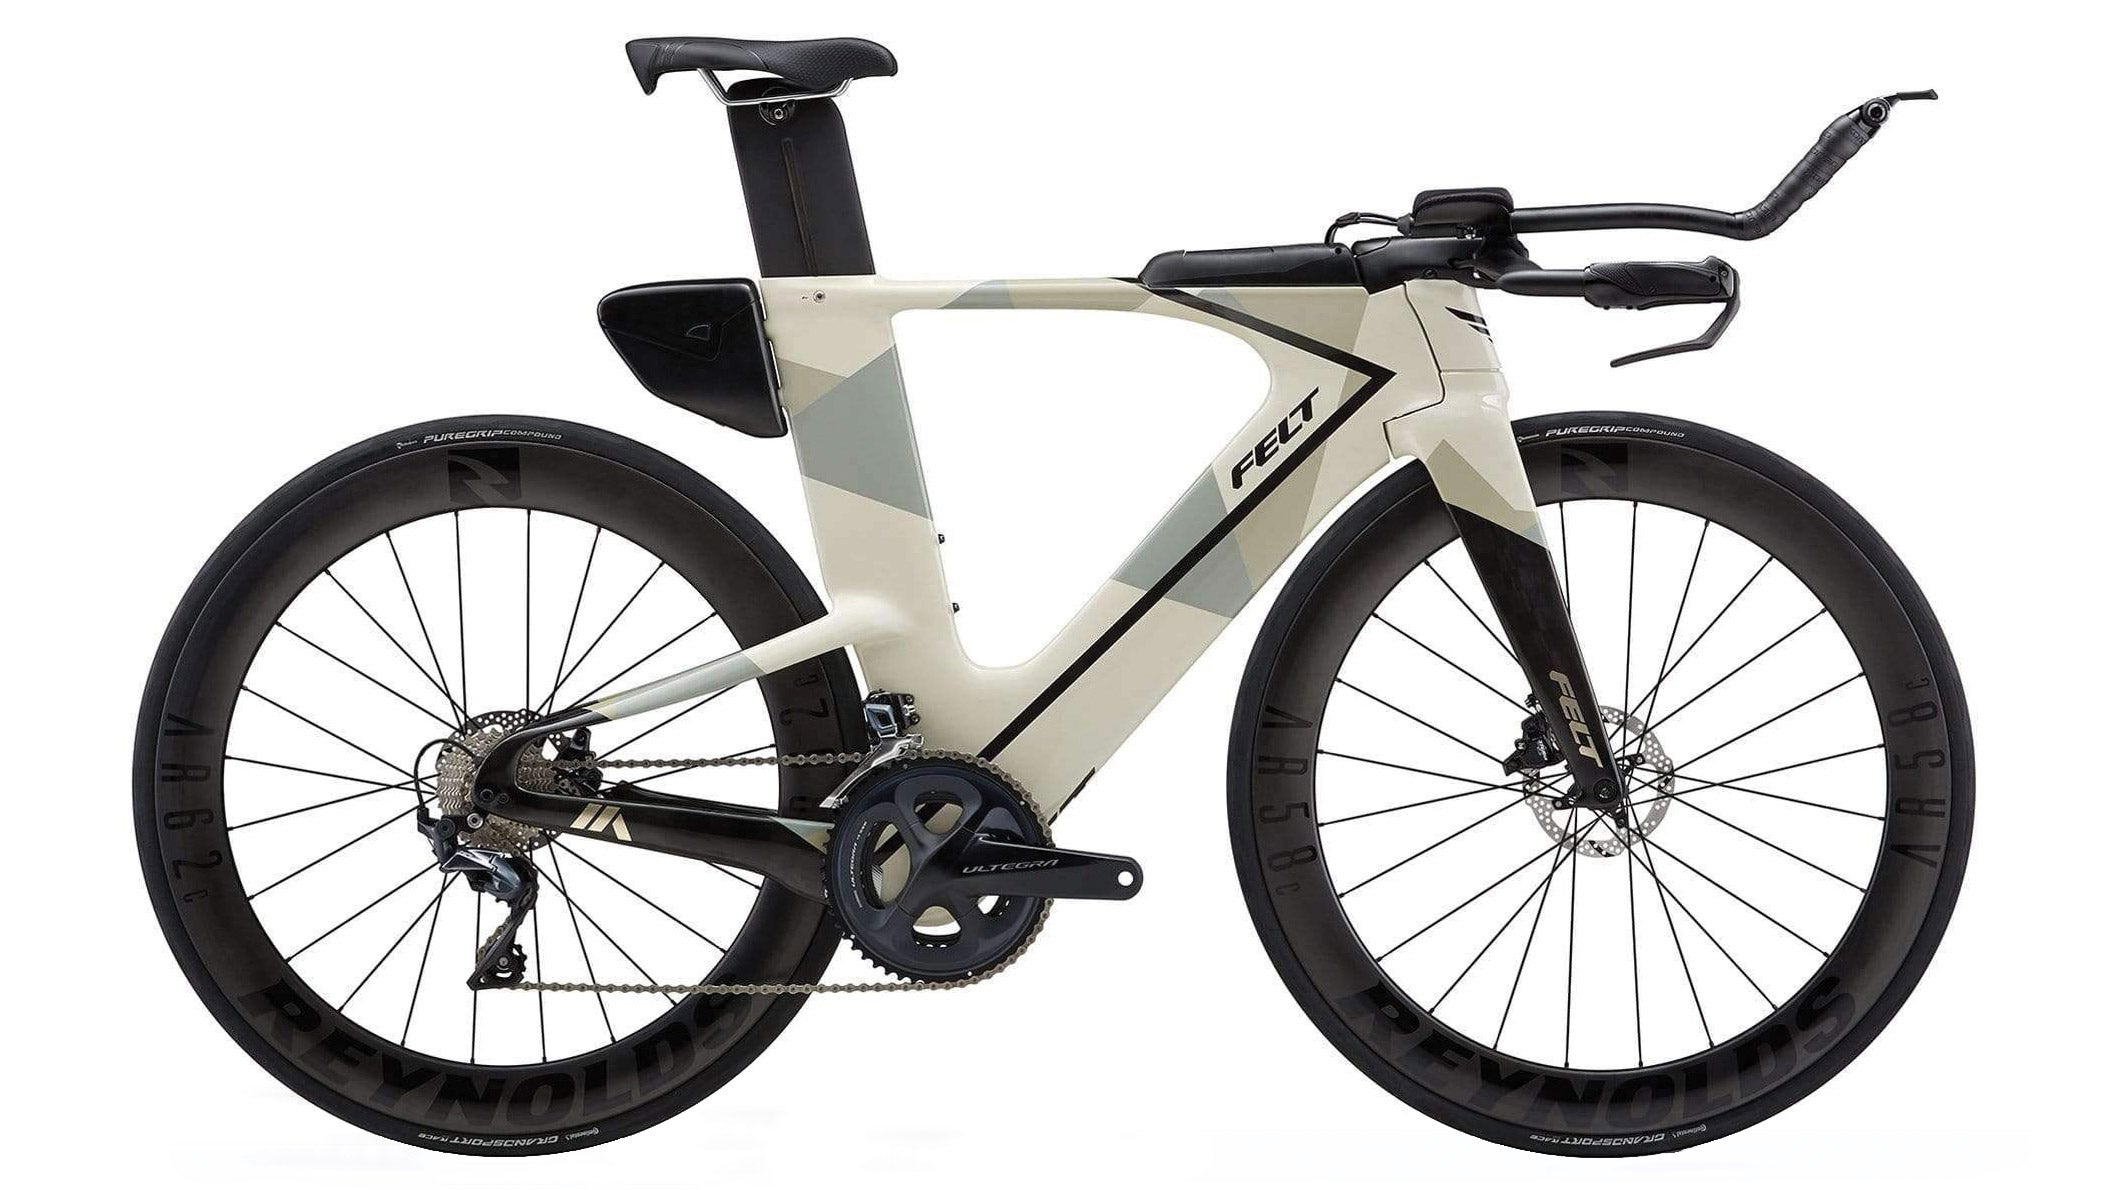 This Felt IA Advanced Ultegra is well priced at $5,000, putting it on our list of the best triathlon bikes.